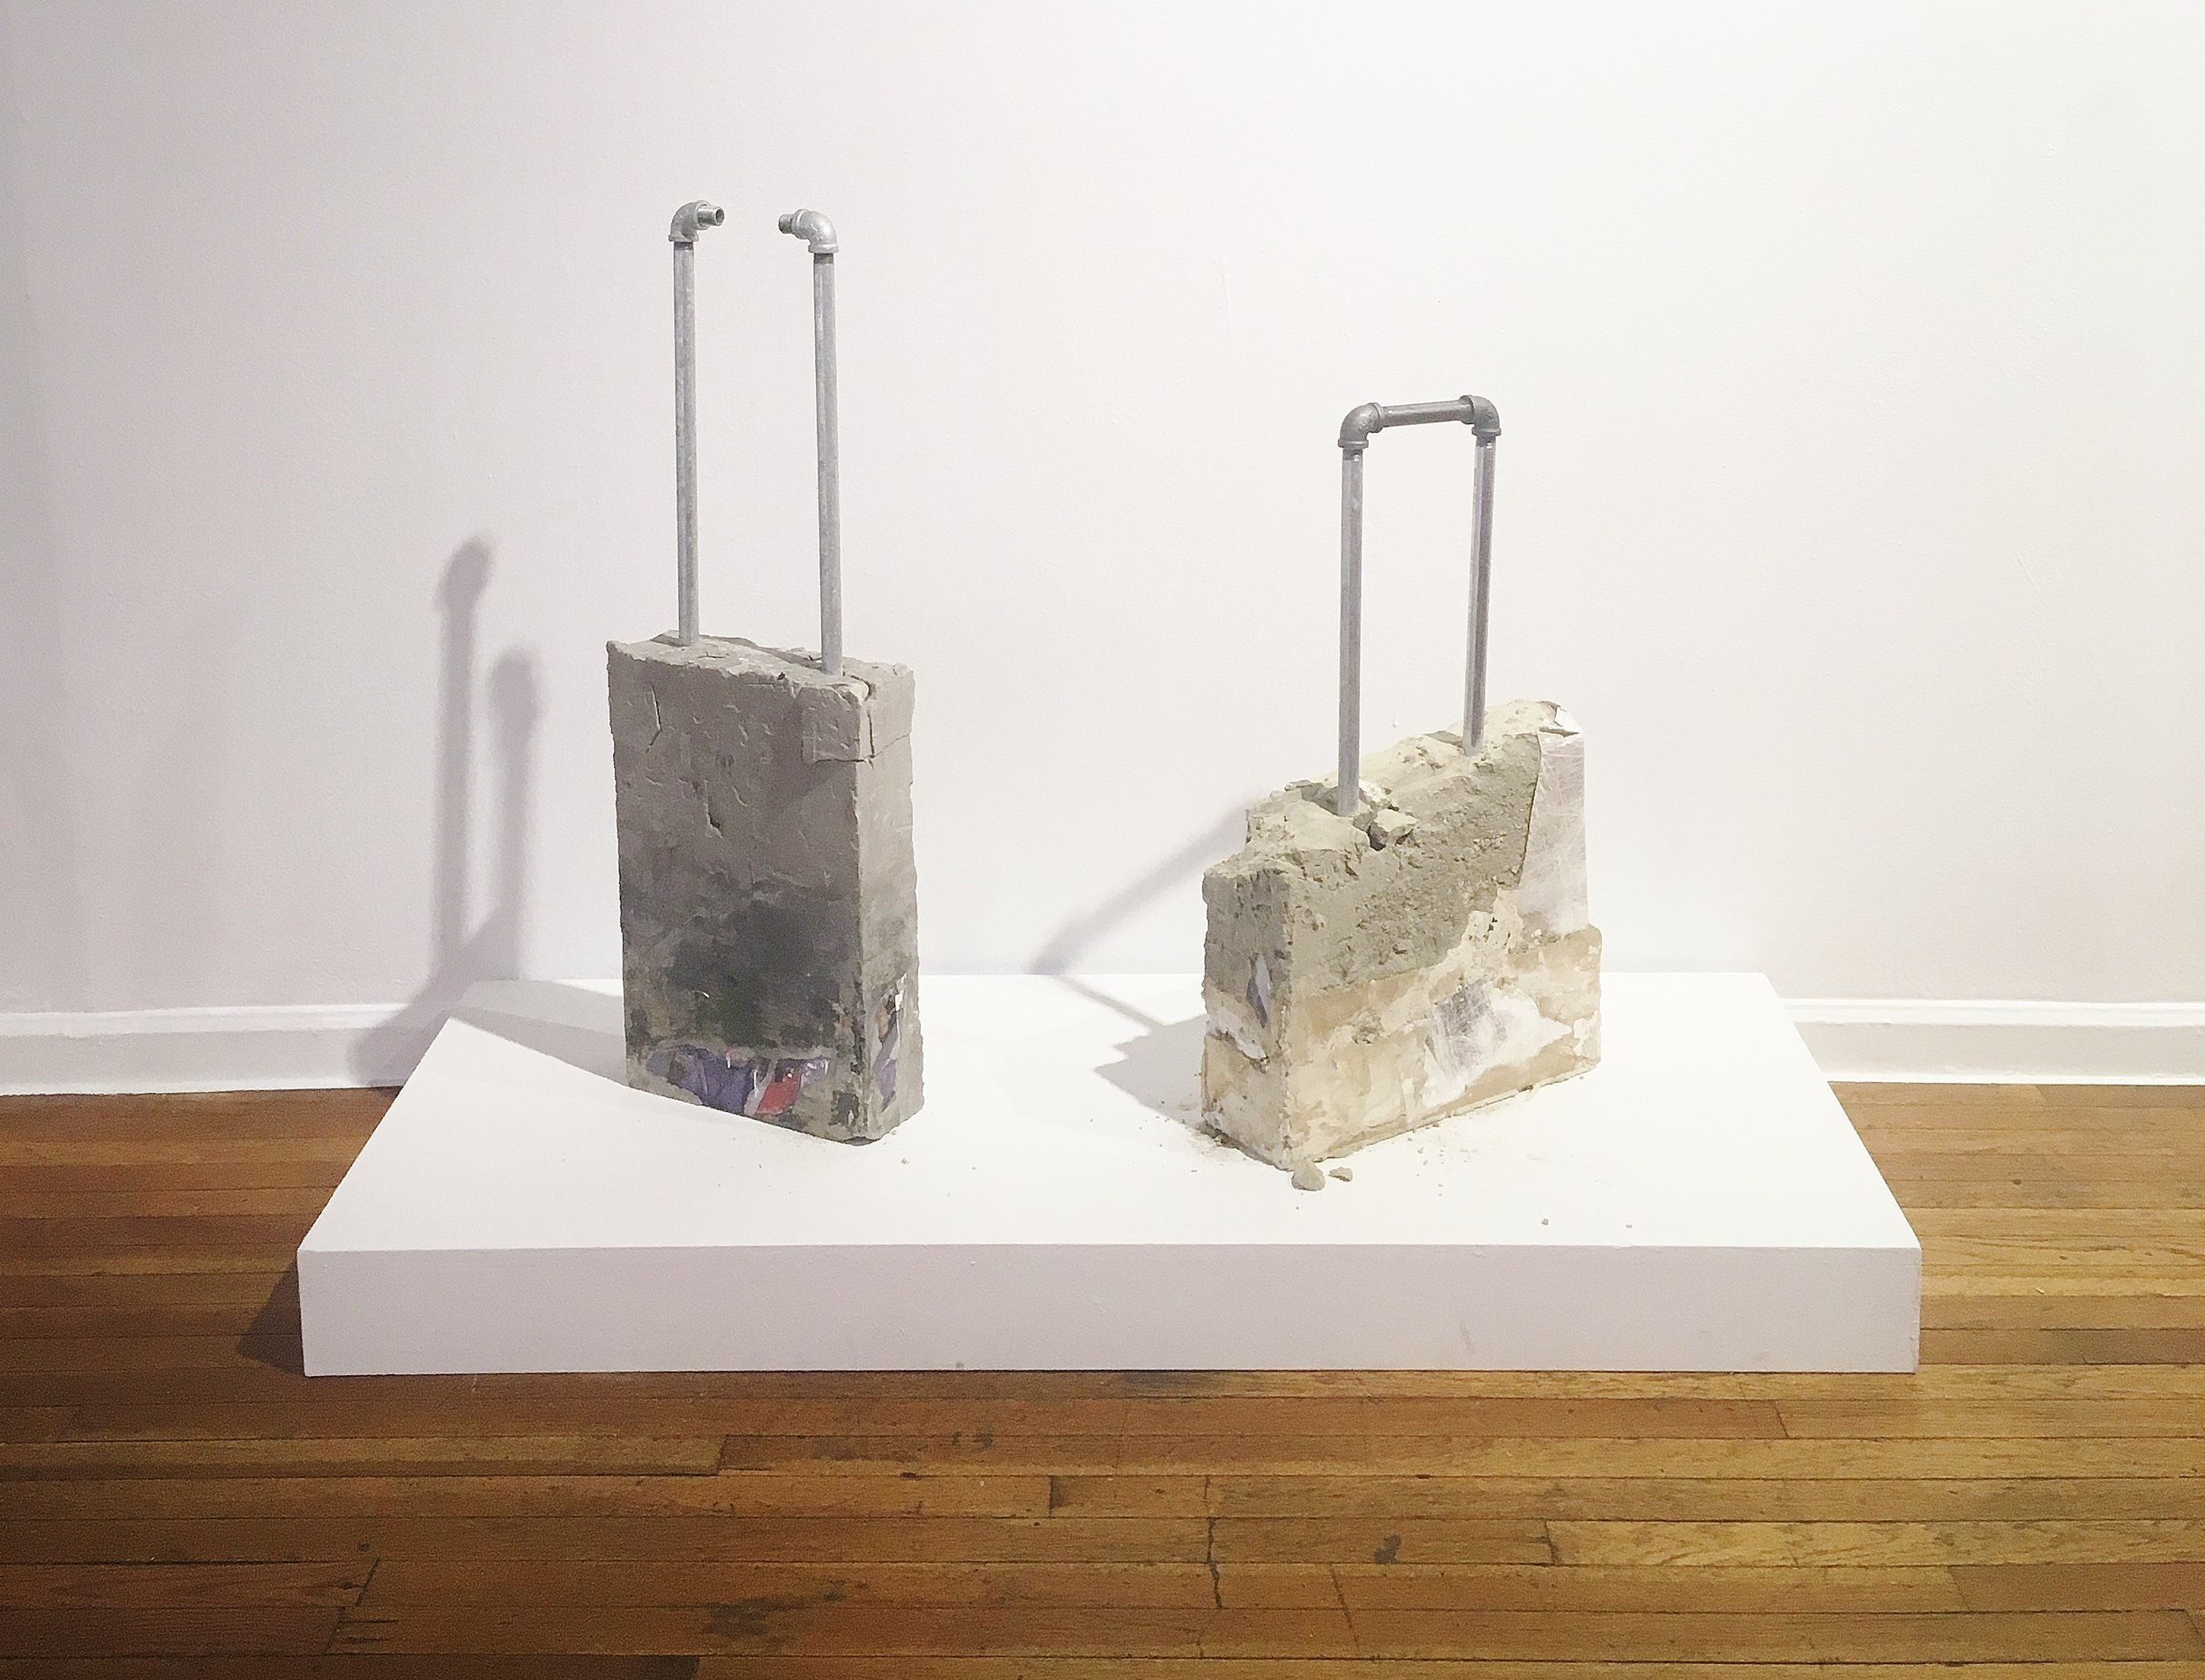 Luggage & Luggage II (2017). Archival print, metal rods in concrete.